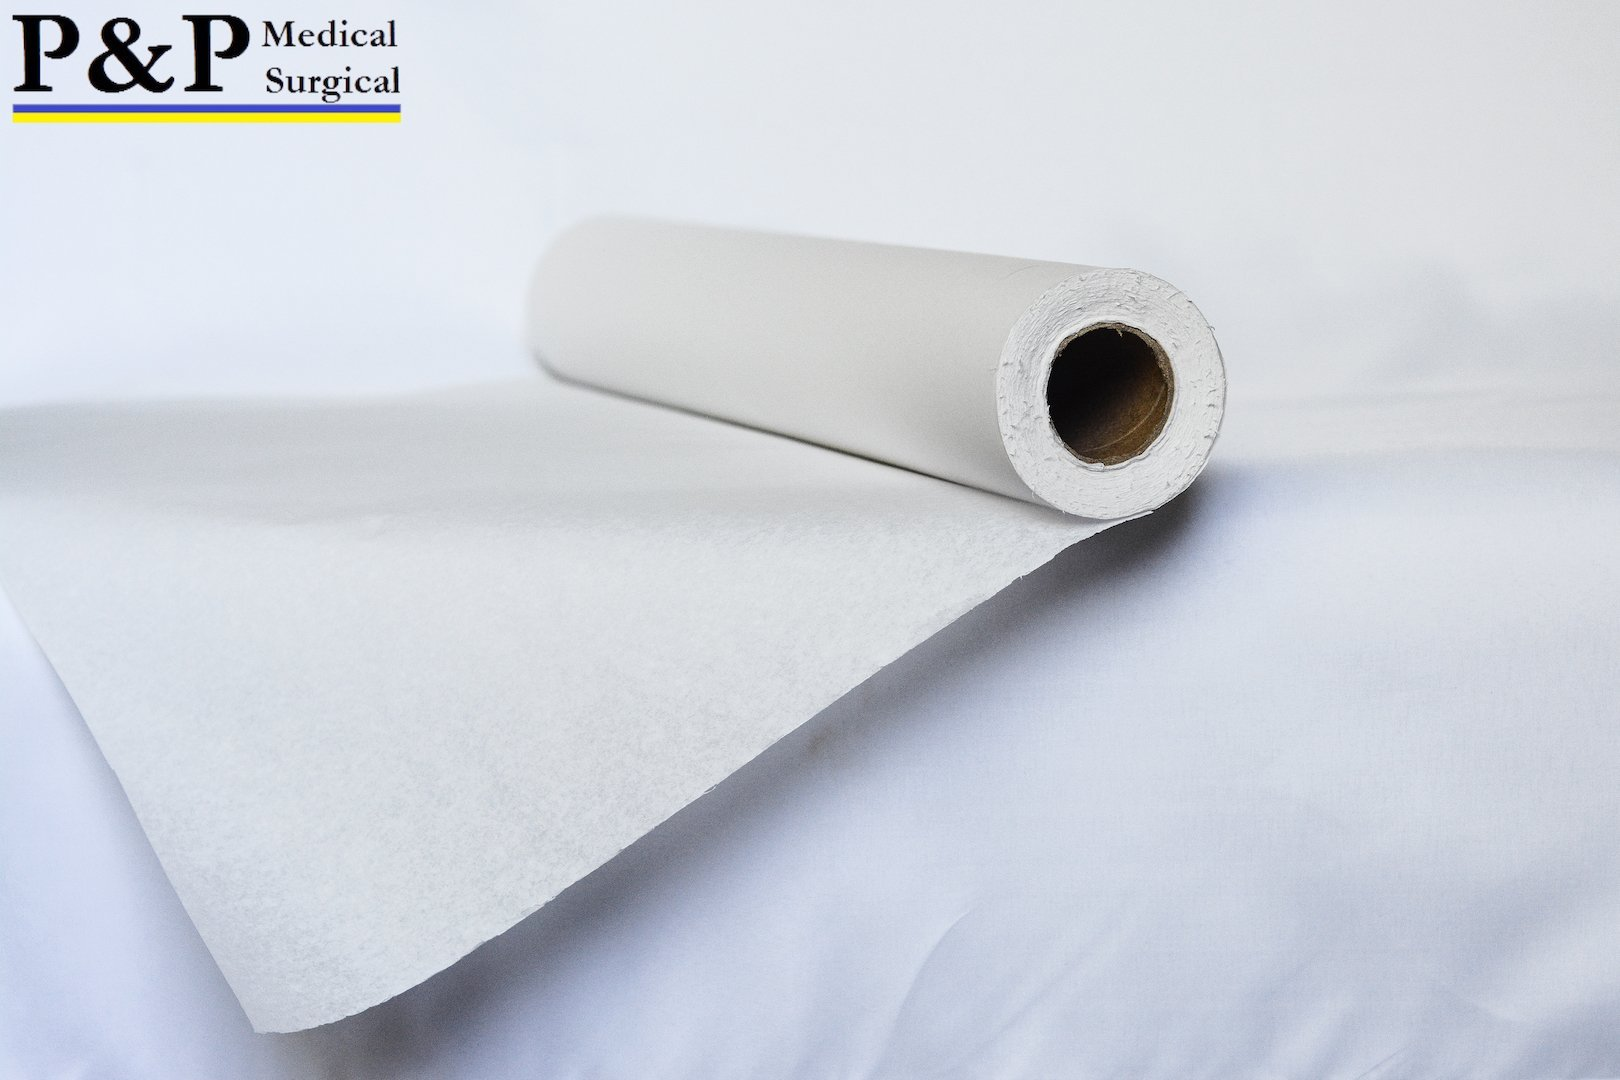 Exam Table Paper with Smooth Finish 21'' x 225 ft (2 Rolls) White, Premium Lightweight and Comfortable